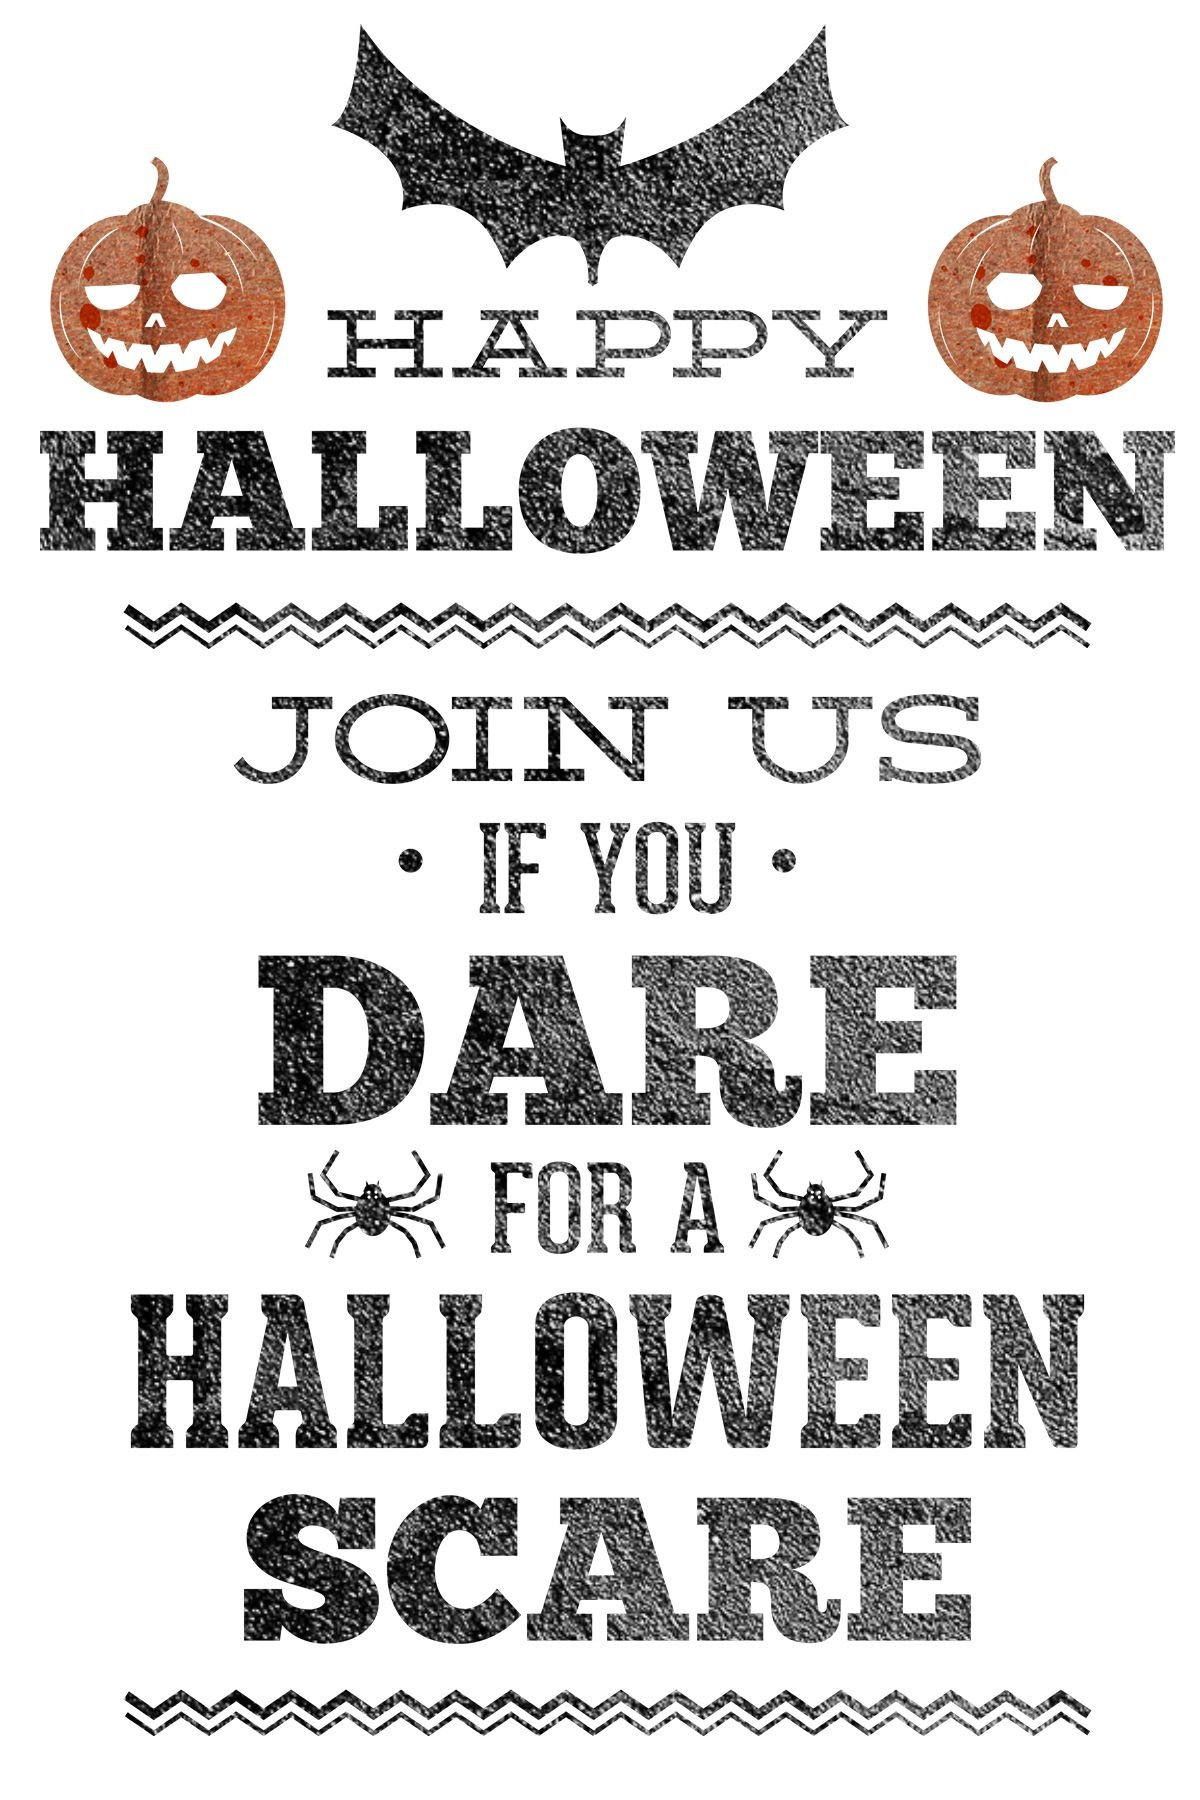 Free Printable Halloween Party Invitation | Halloween Printables 2 - Free Printable Halloween Party Decorations